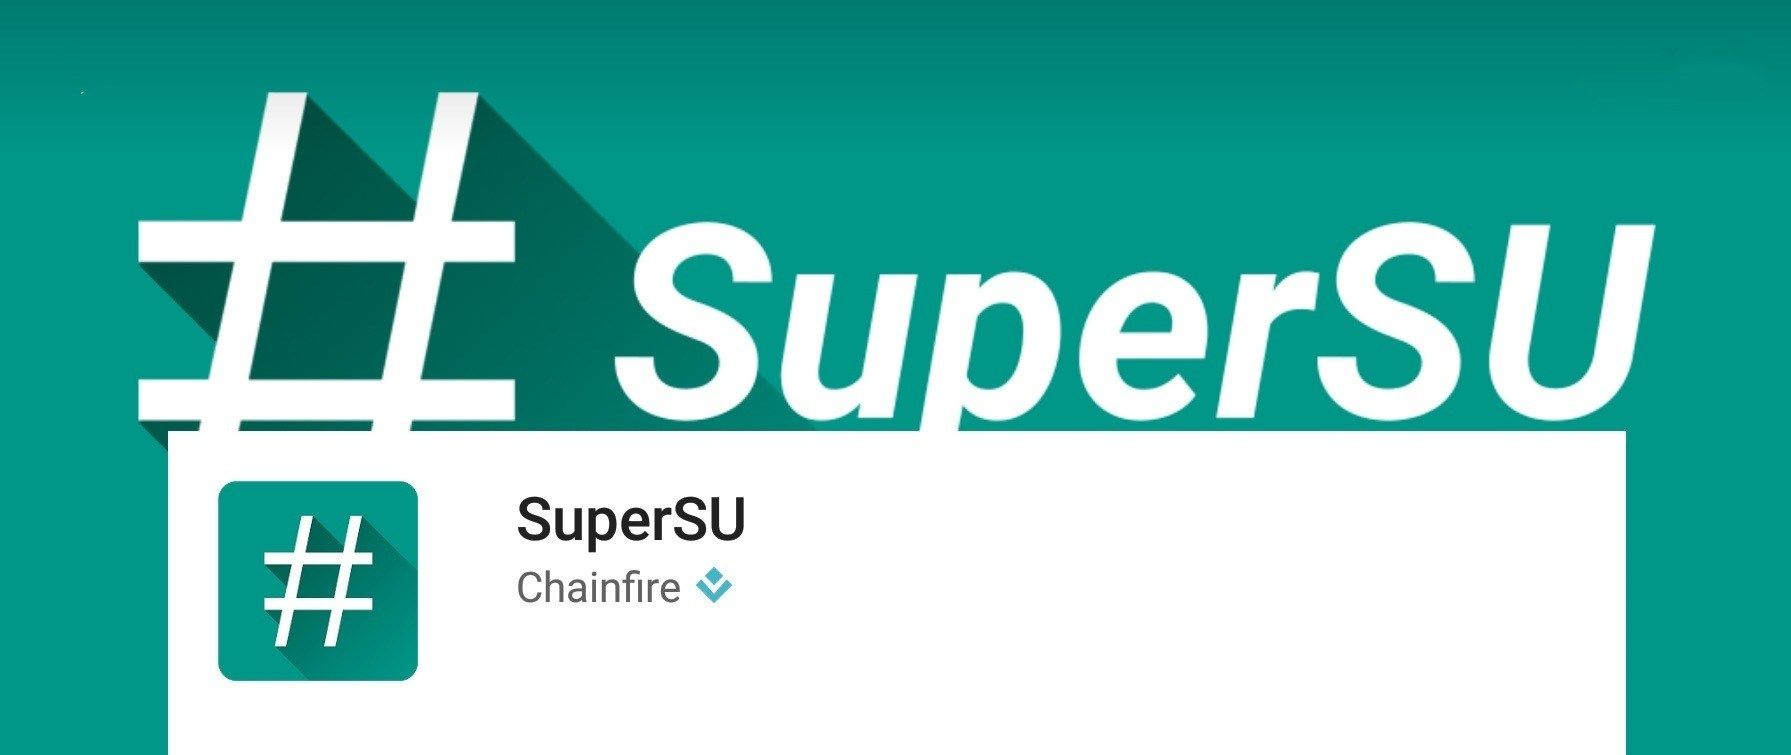 SUPERSU нет прав